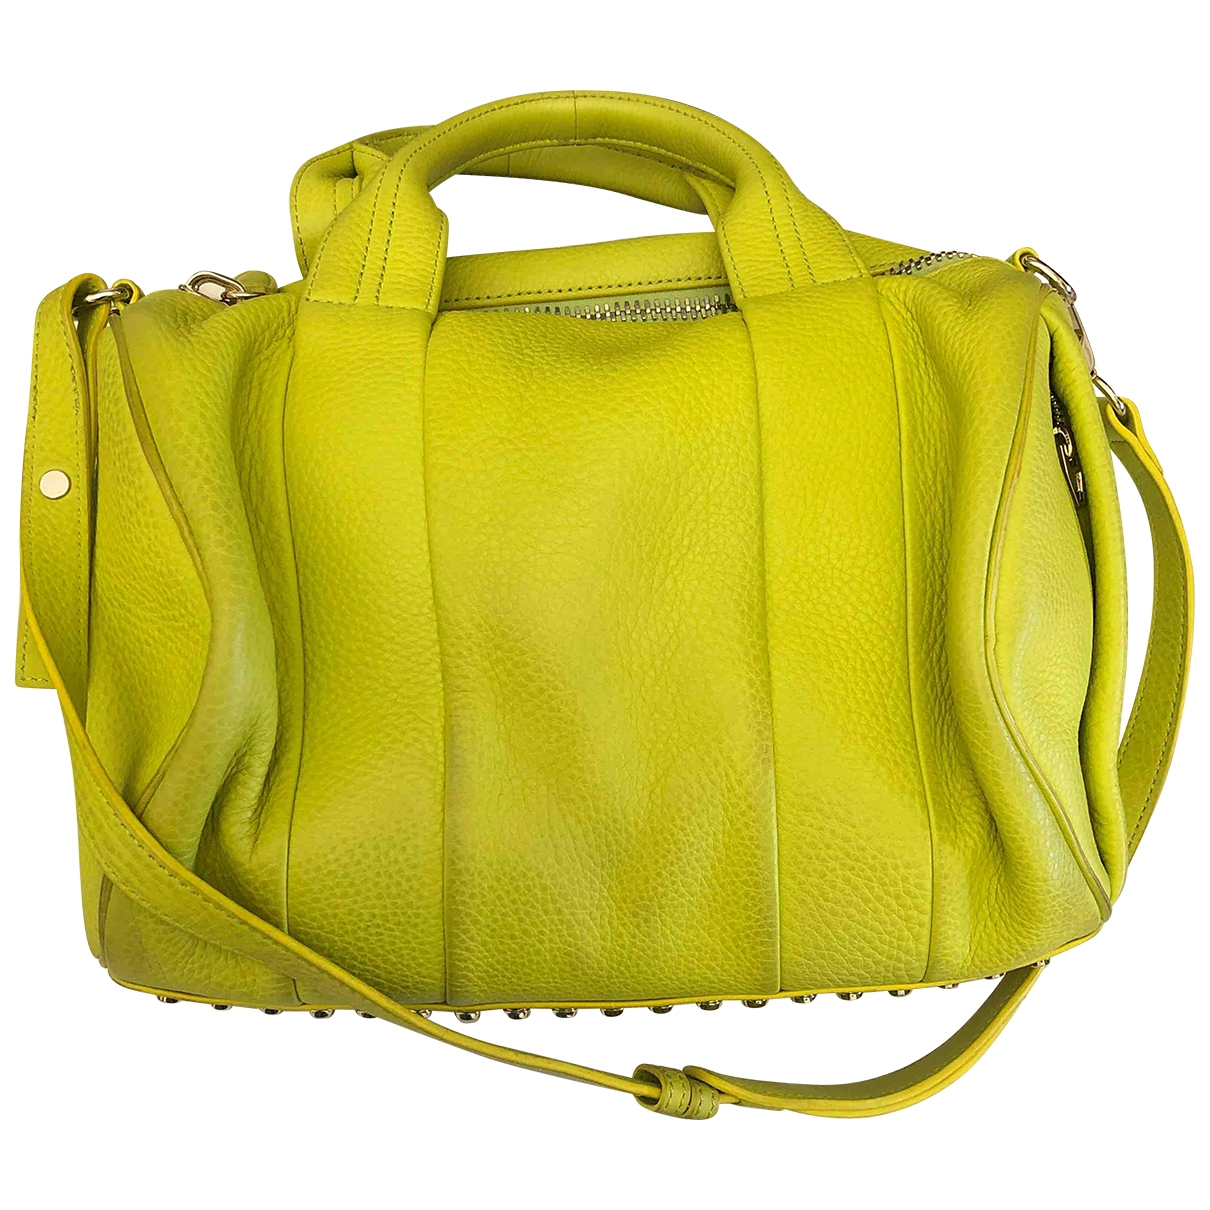 Alexander Wang \N Yellow Leather handbag for Women \N